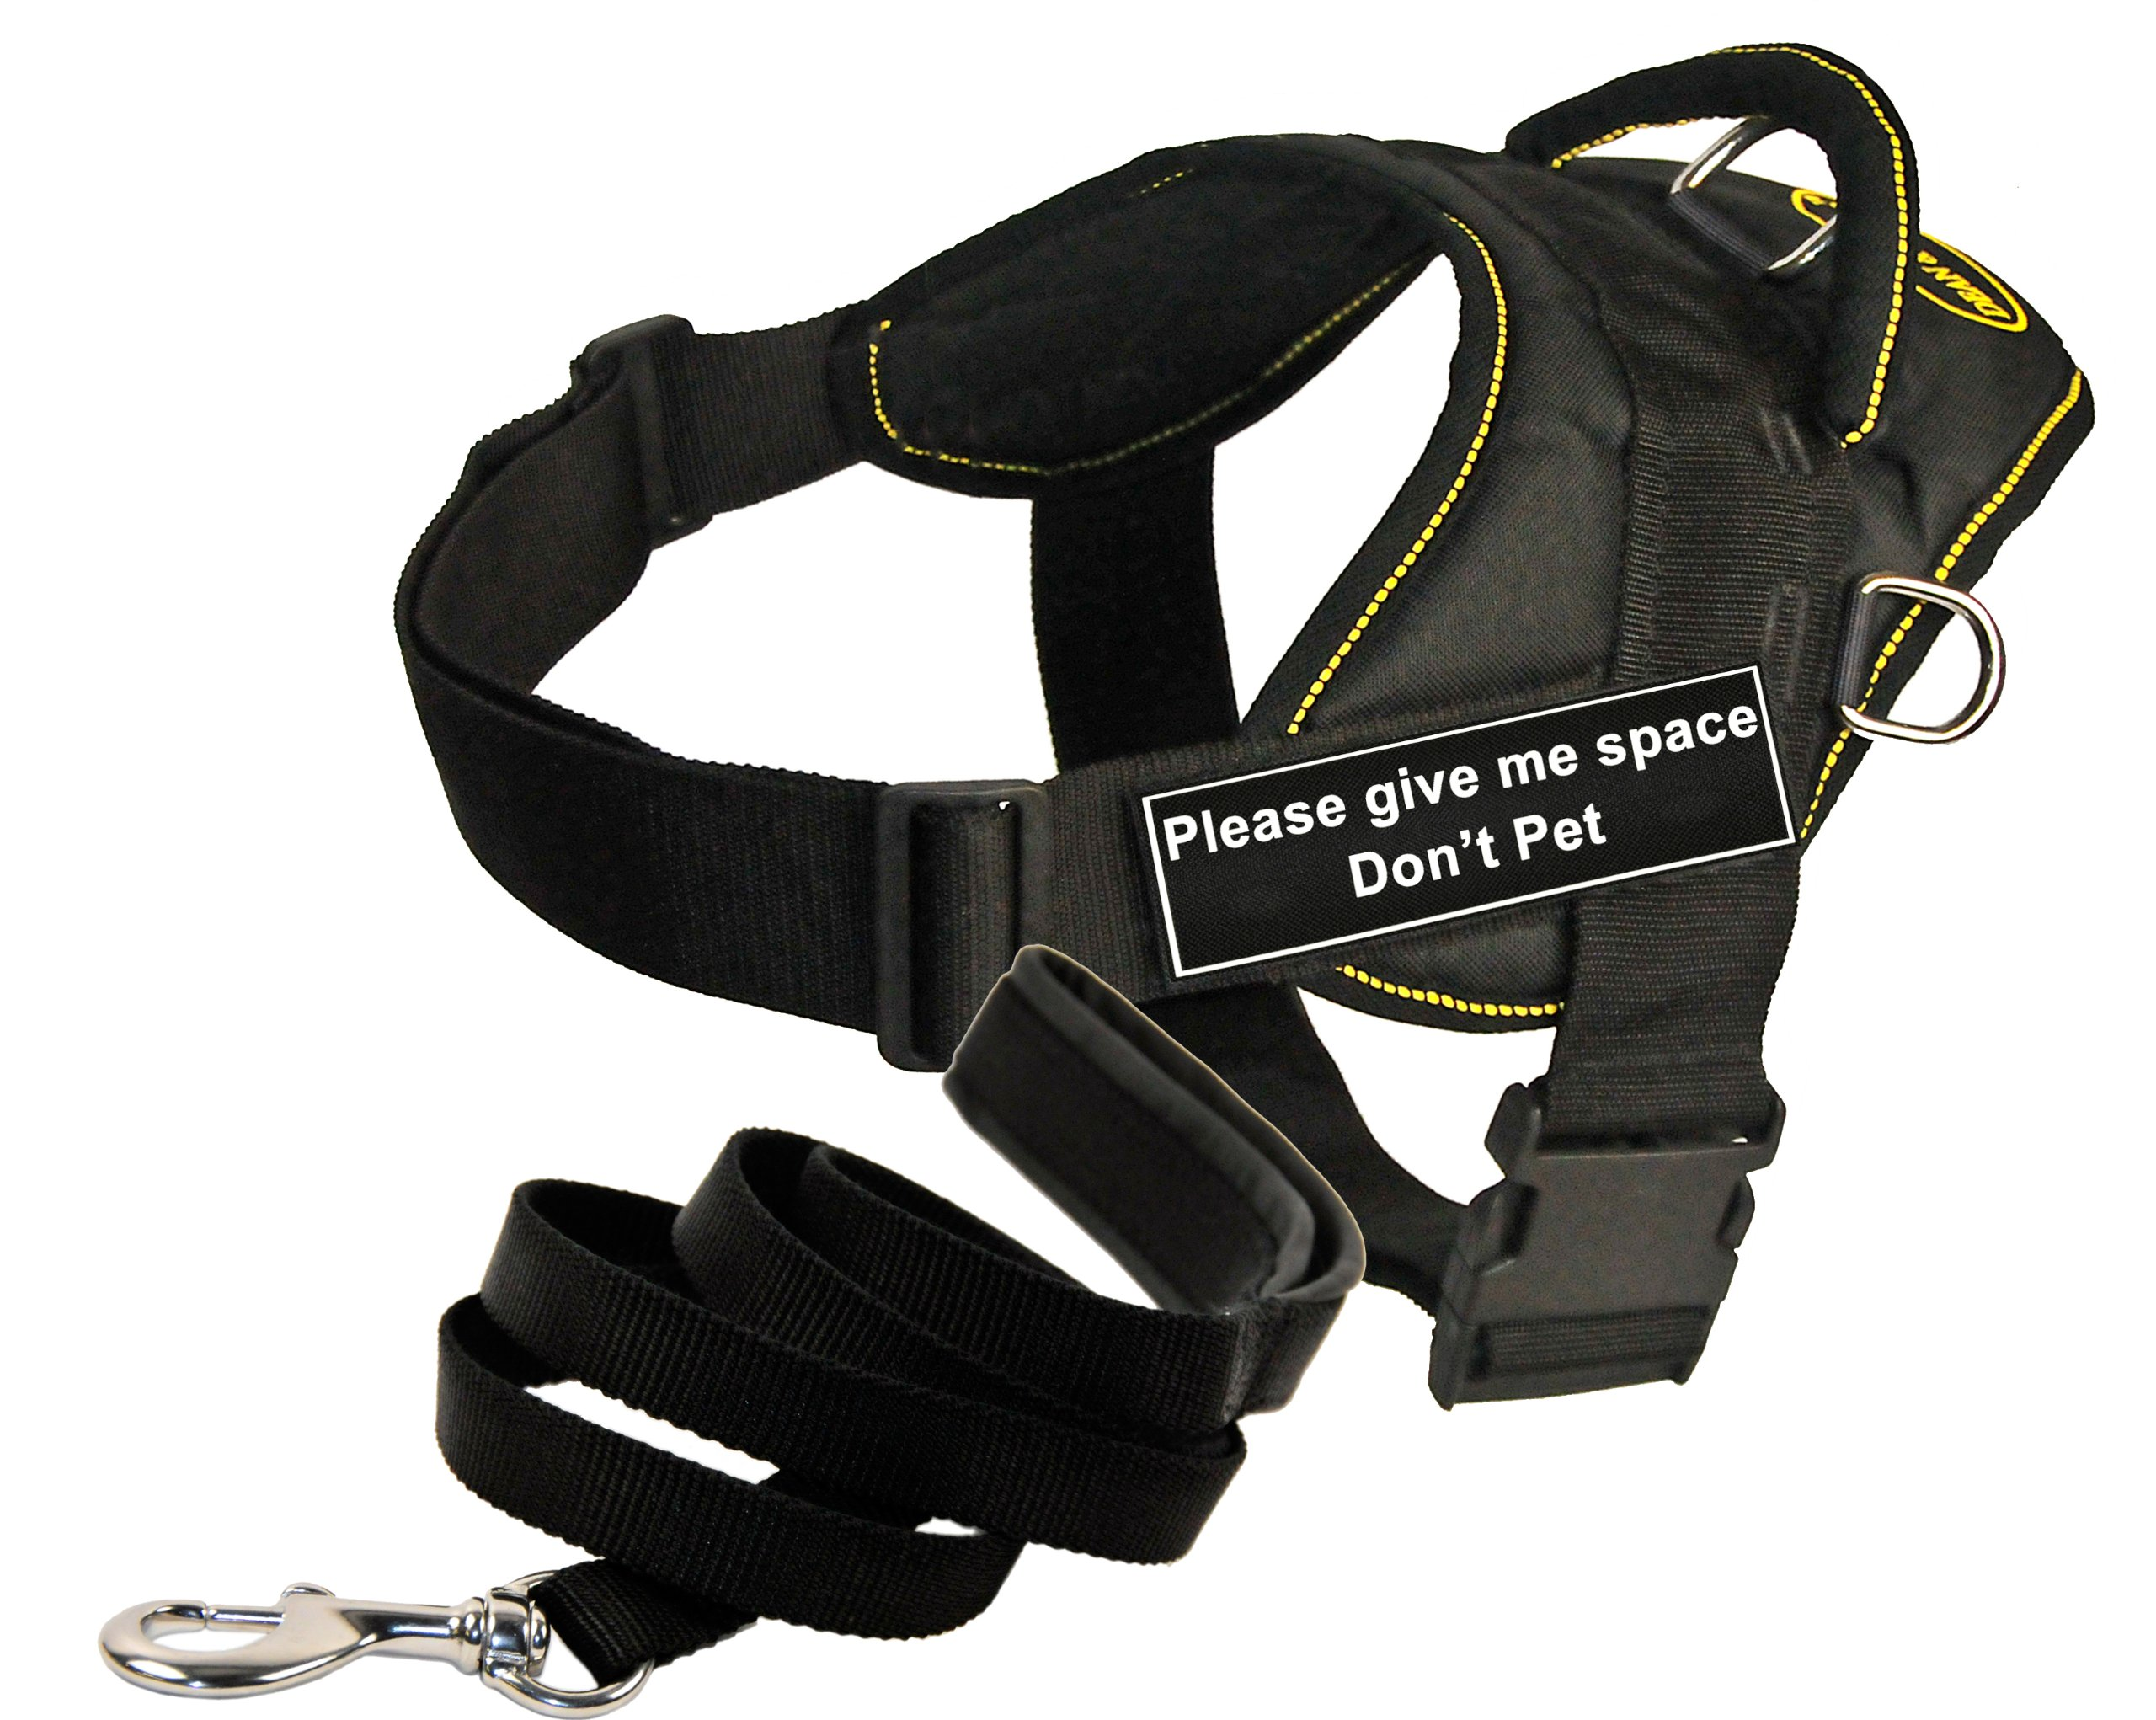 Dean and Tyler Bundle-One DT Fun Works Harness, Please Give Me Space Don't Pet, Yellow Trim, Medium + Padded Puppy Leash, 6 FT Stainless Snap - Black